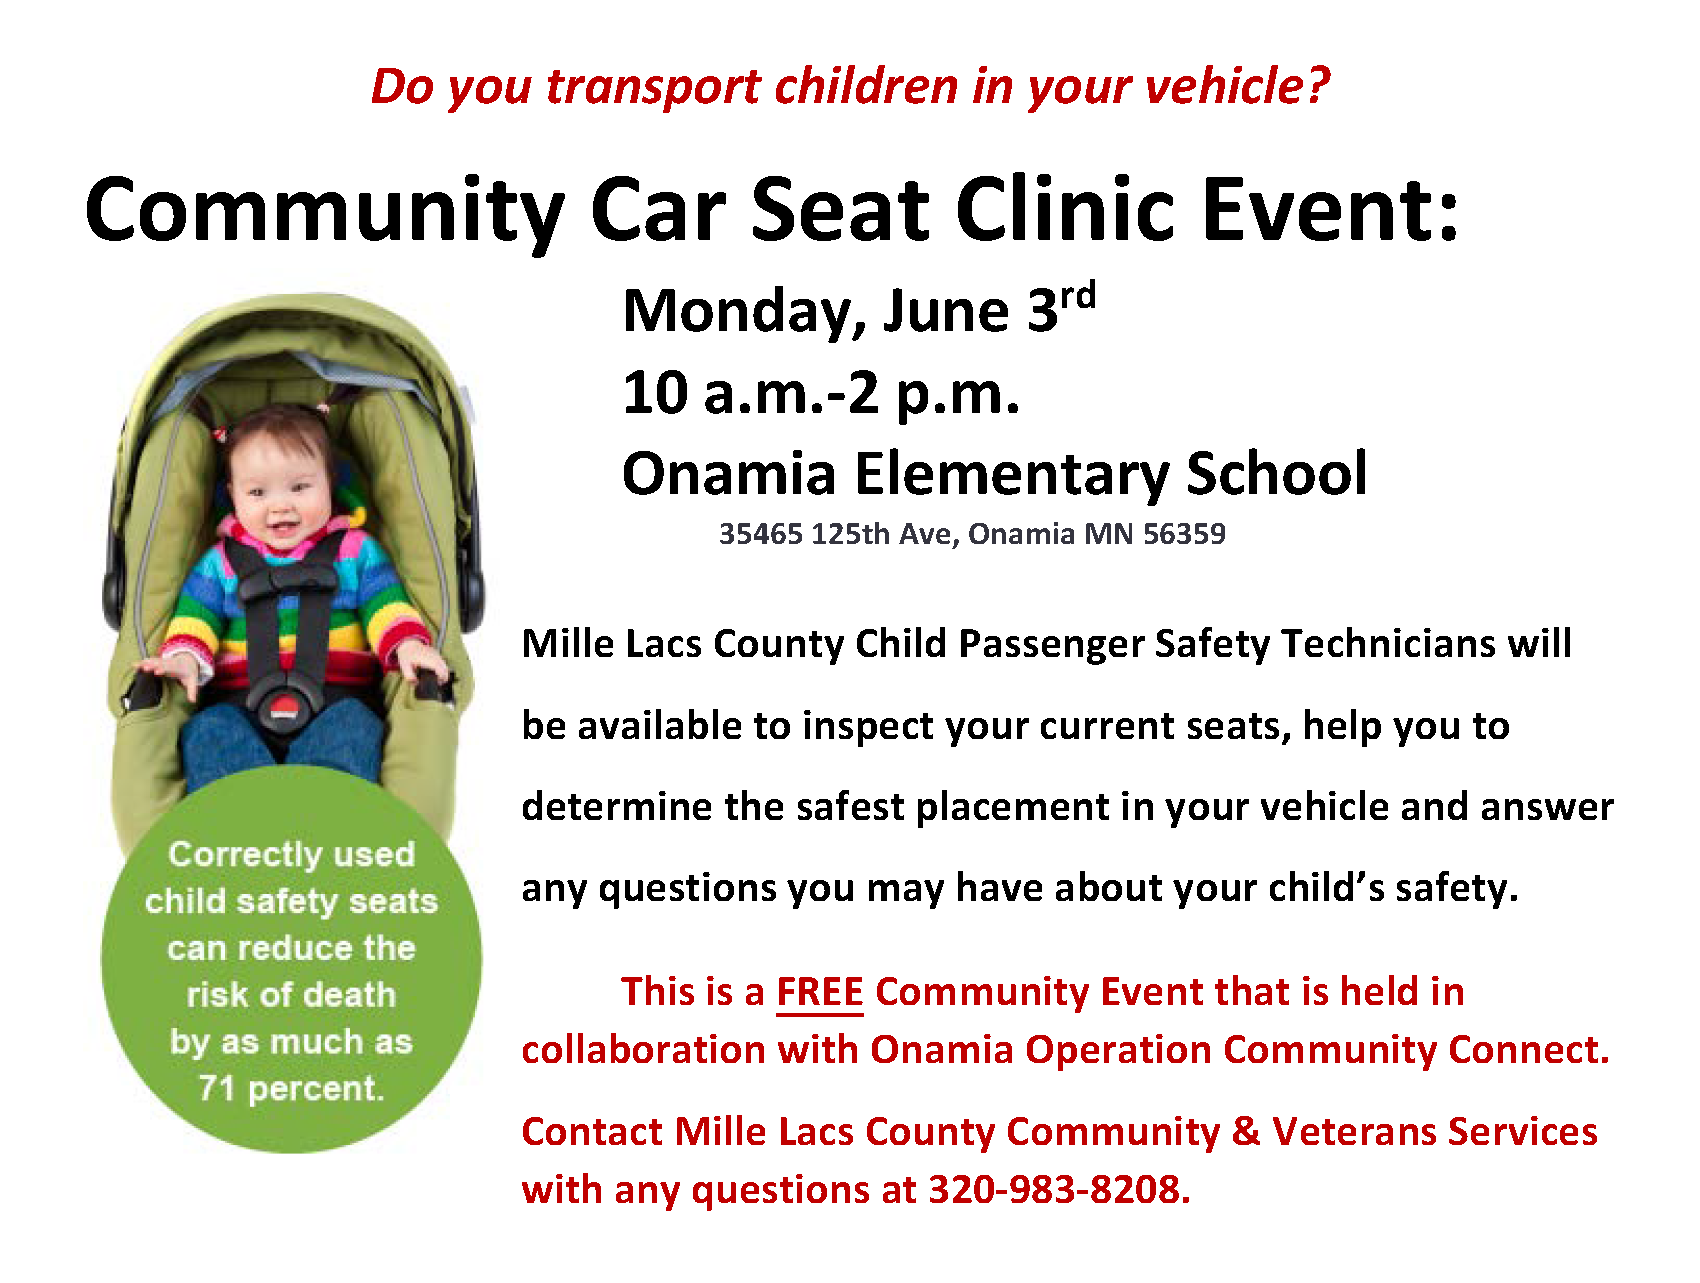 Community Car Seat Clinic Event